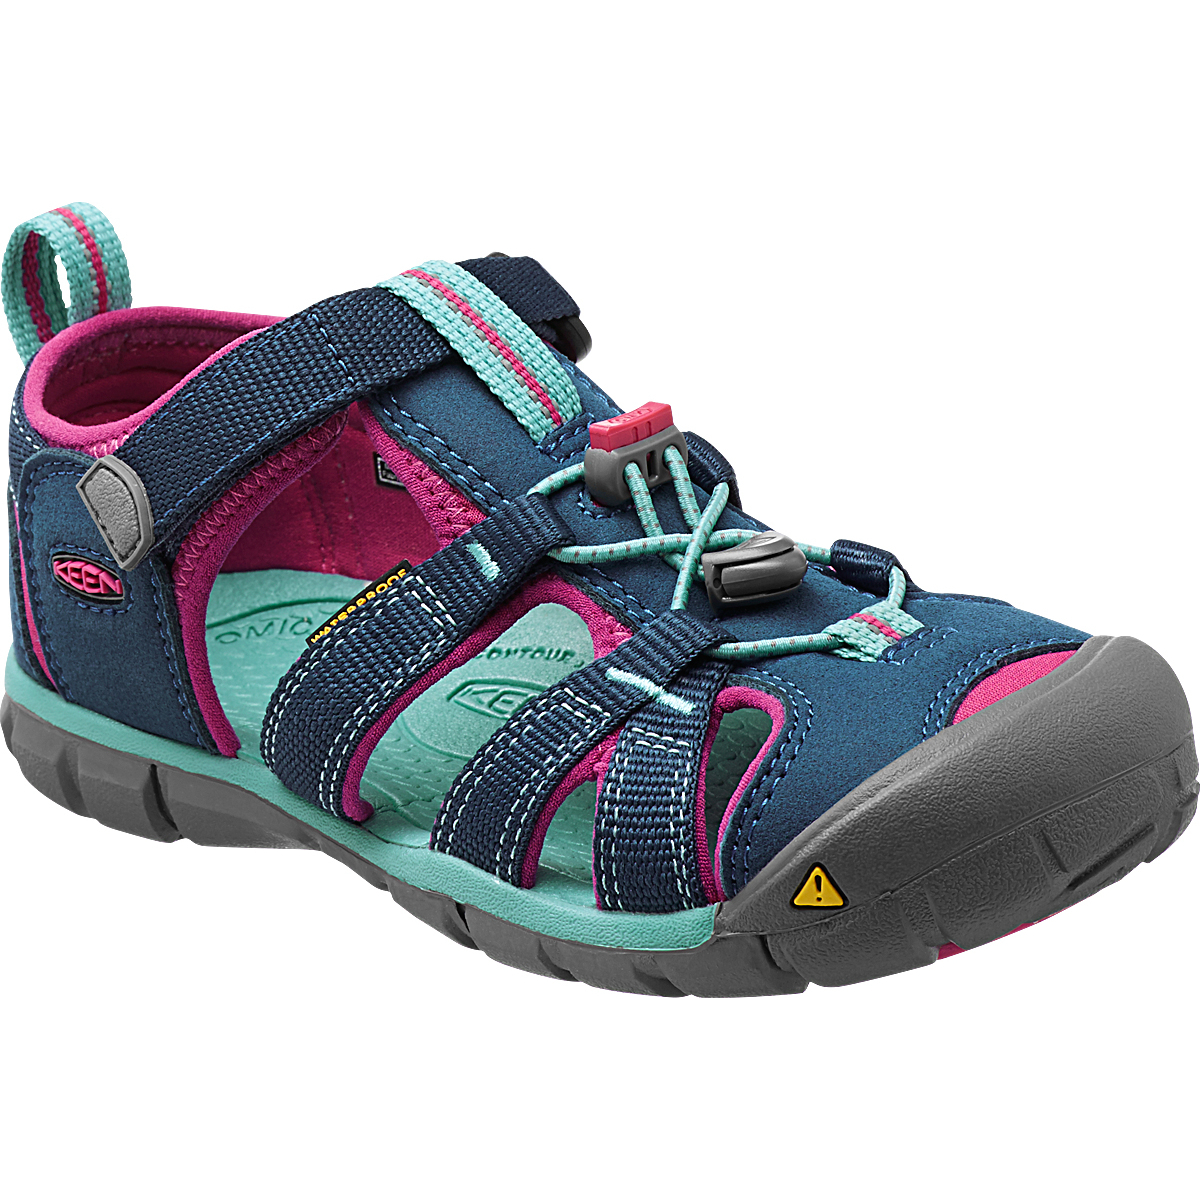 Keen Big Kids' Seacamp Ii Cnx Sandals - Blue, 2